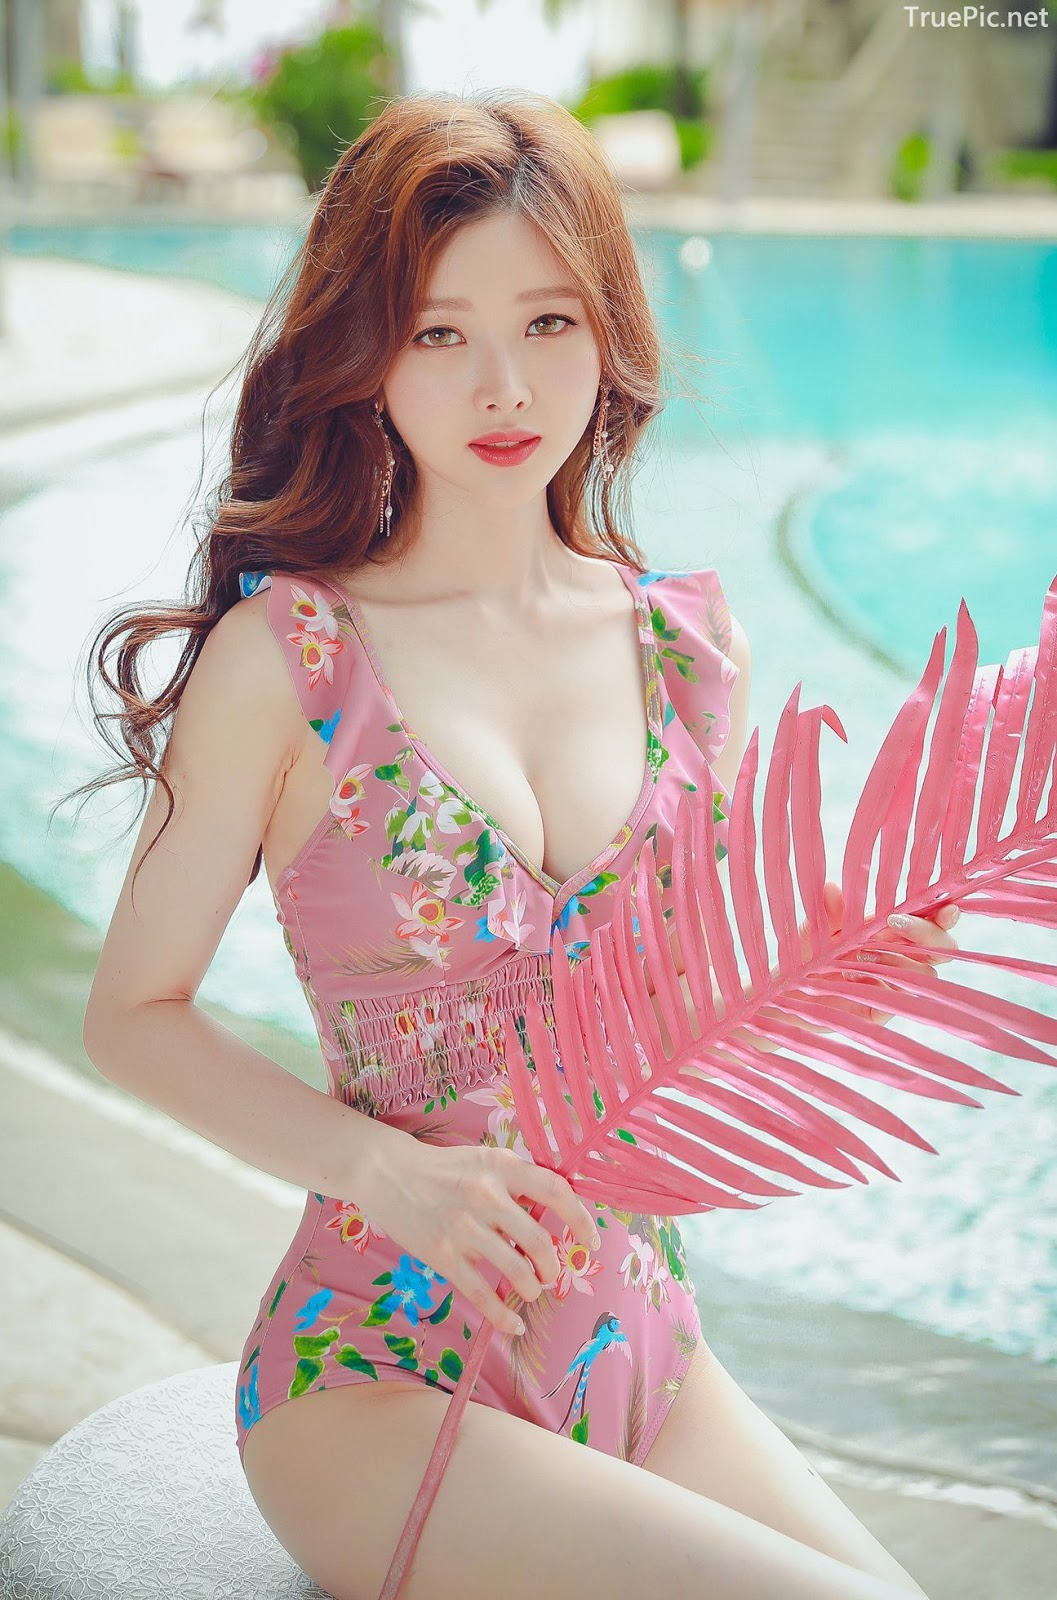 Korean lingerie queen model - Kim Hee Jeong - Floral Pink Swimsuit - Picture 4